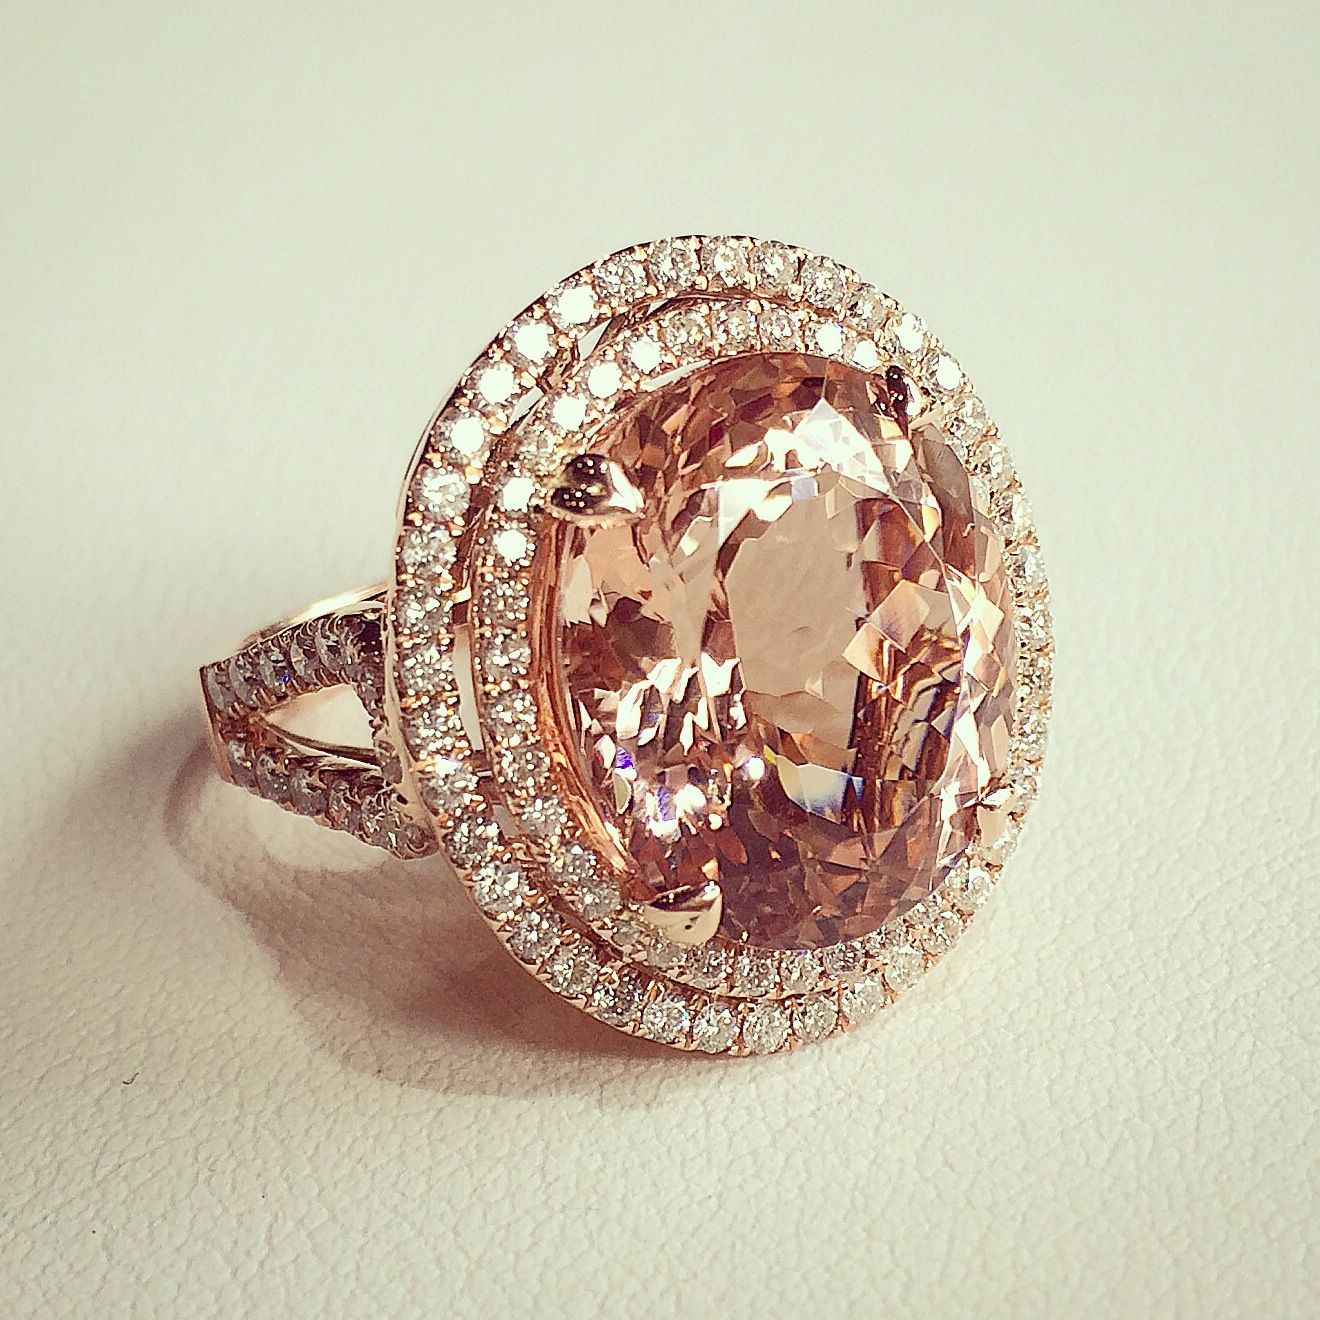 Pink Diamond Jewelry Rare And Expensive How Much Do They Cost ม ร ปภาพ